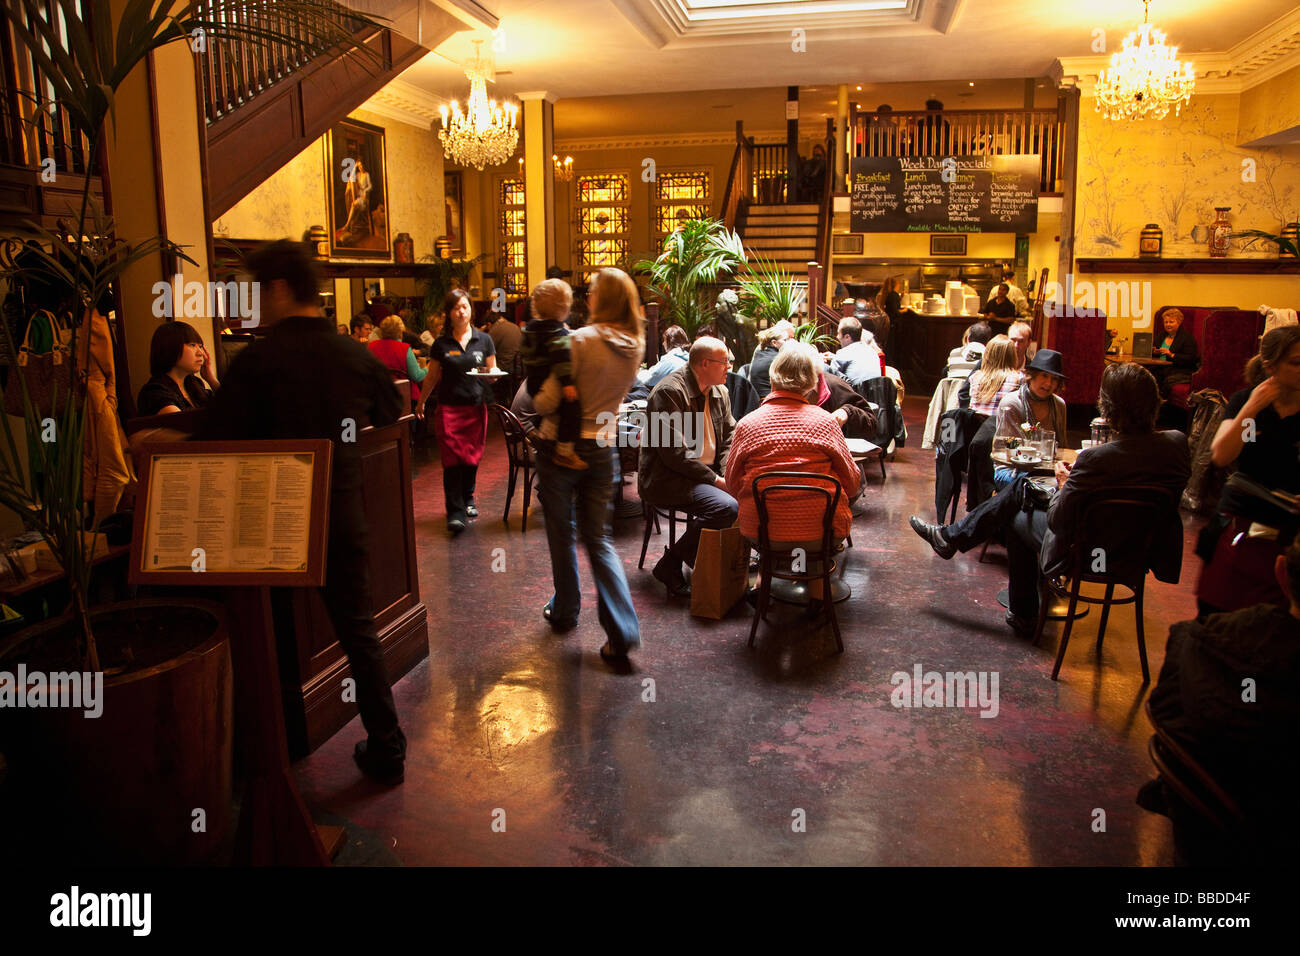 Bewleys Bewley's Cafe interior Dublin Ireland Eire Irish Republic - Stock Image